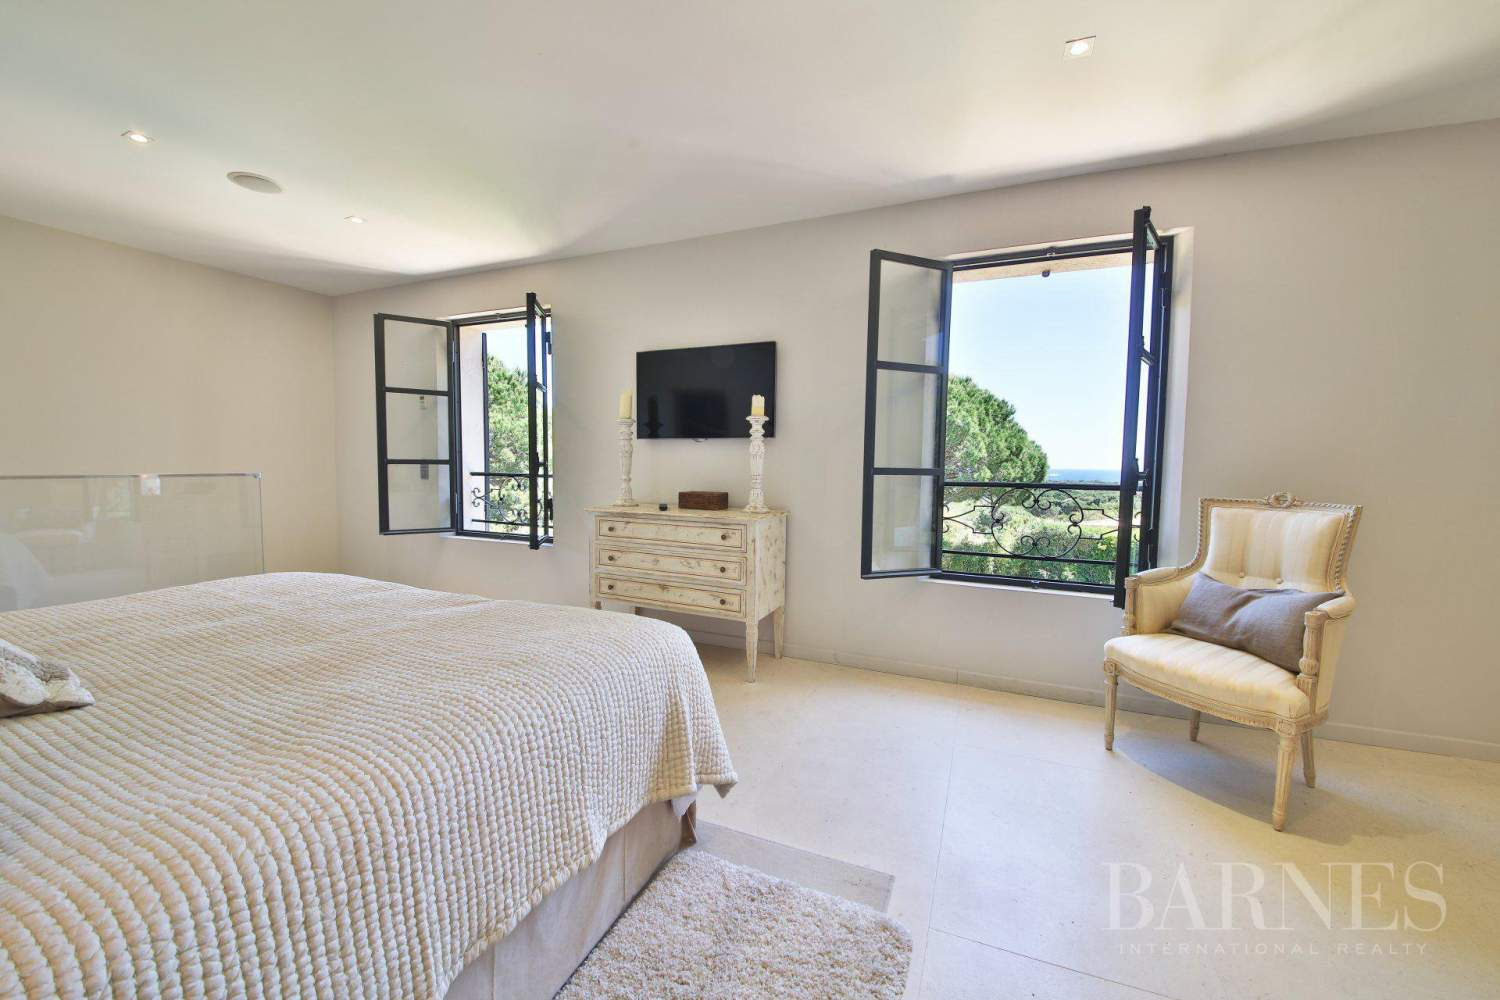 RAMATUELLE - Sea view - 6 bedrooms - Heated pool picture 13